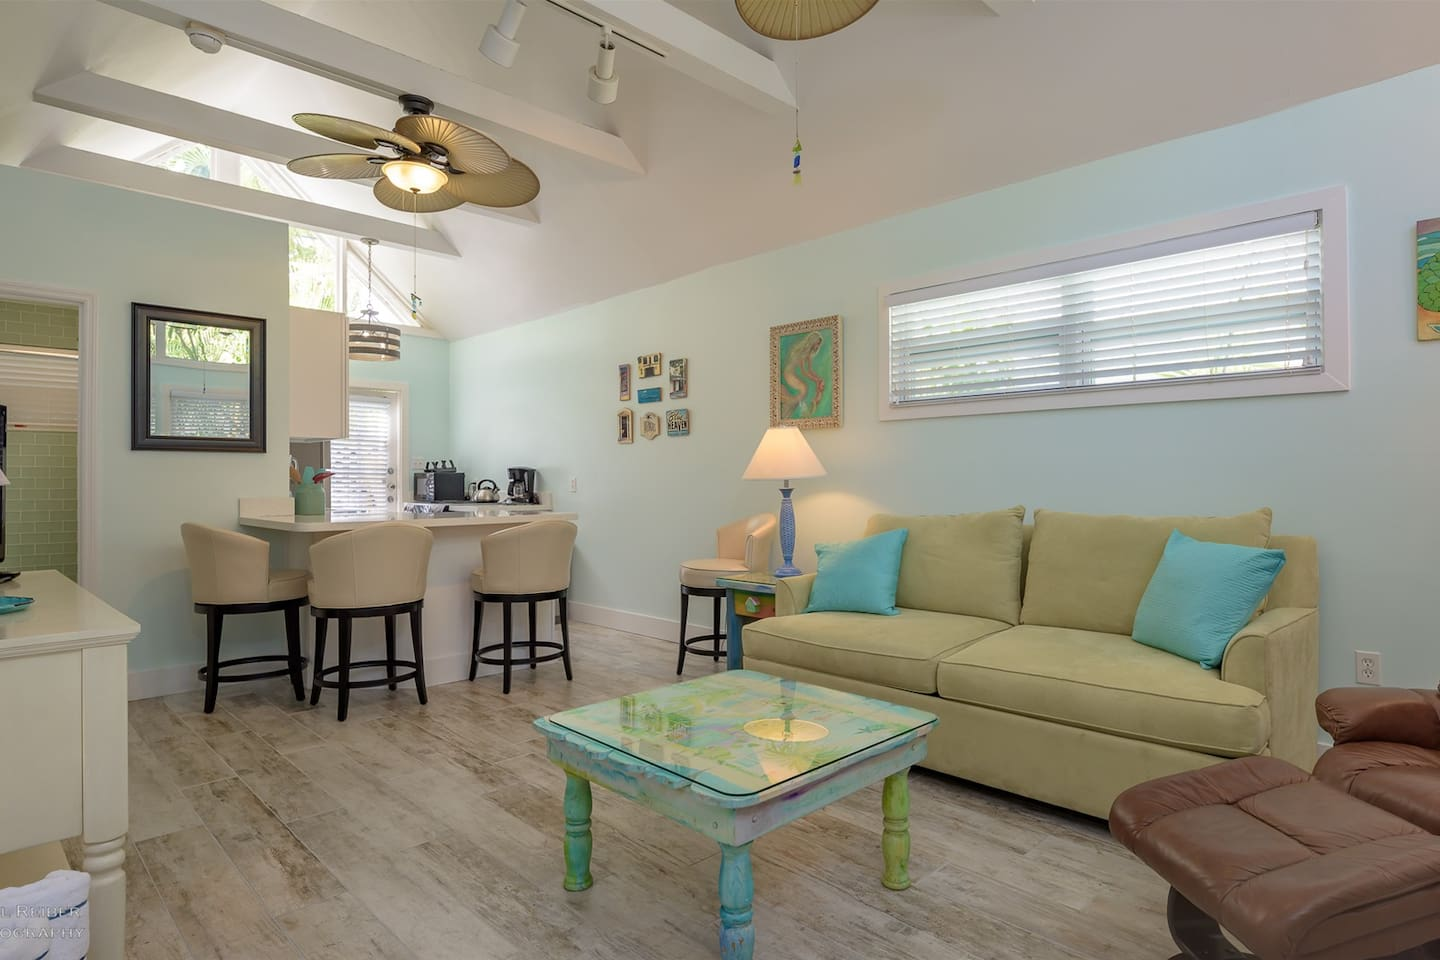 Island Style Cabins For Rent In Key West Florida United States - Island style coffee table